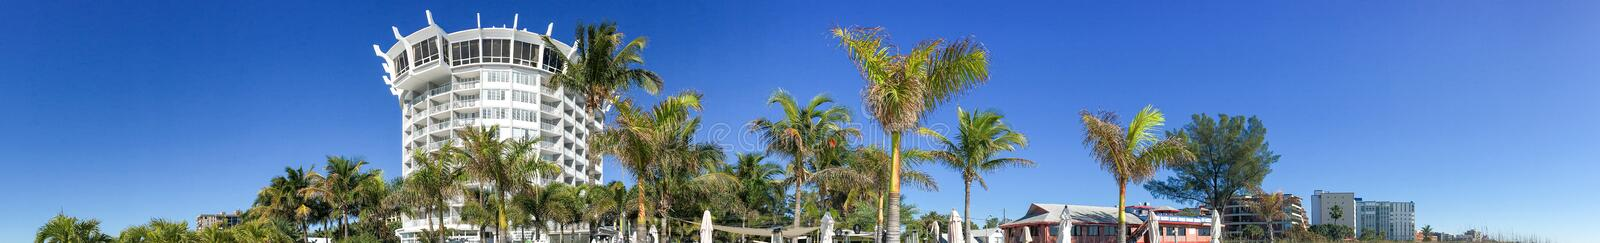 Panoramic view St Pete Beach, St Petersburg, Florida - USA.  royalty free stock photography